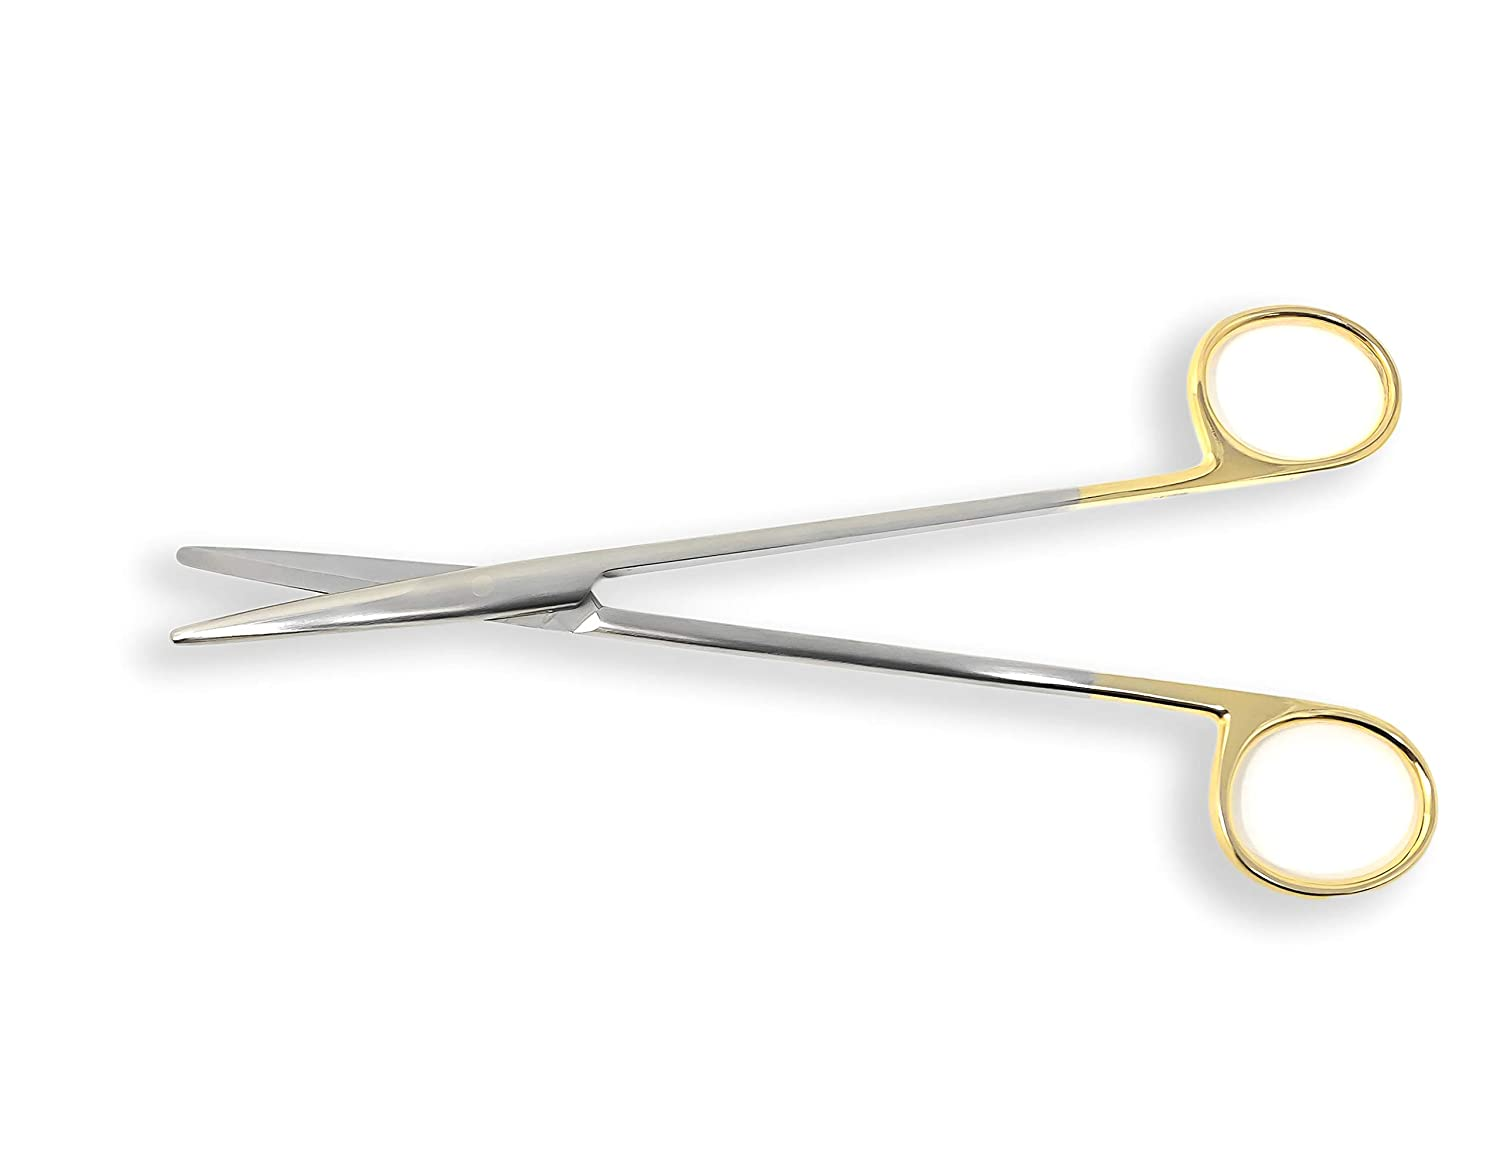 Cynamed TC Metzenbaum Popular products Dissecting with Tungsten Scissors Max 63% OFF Carbide